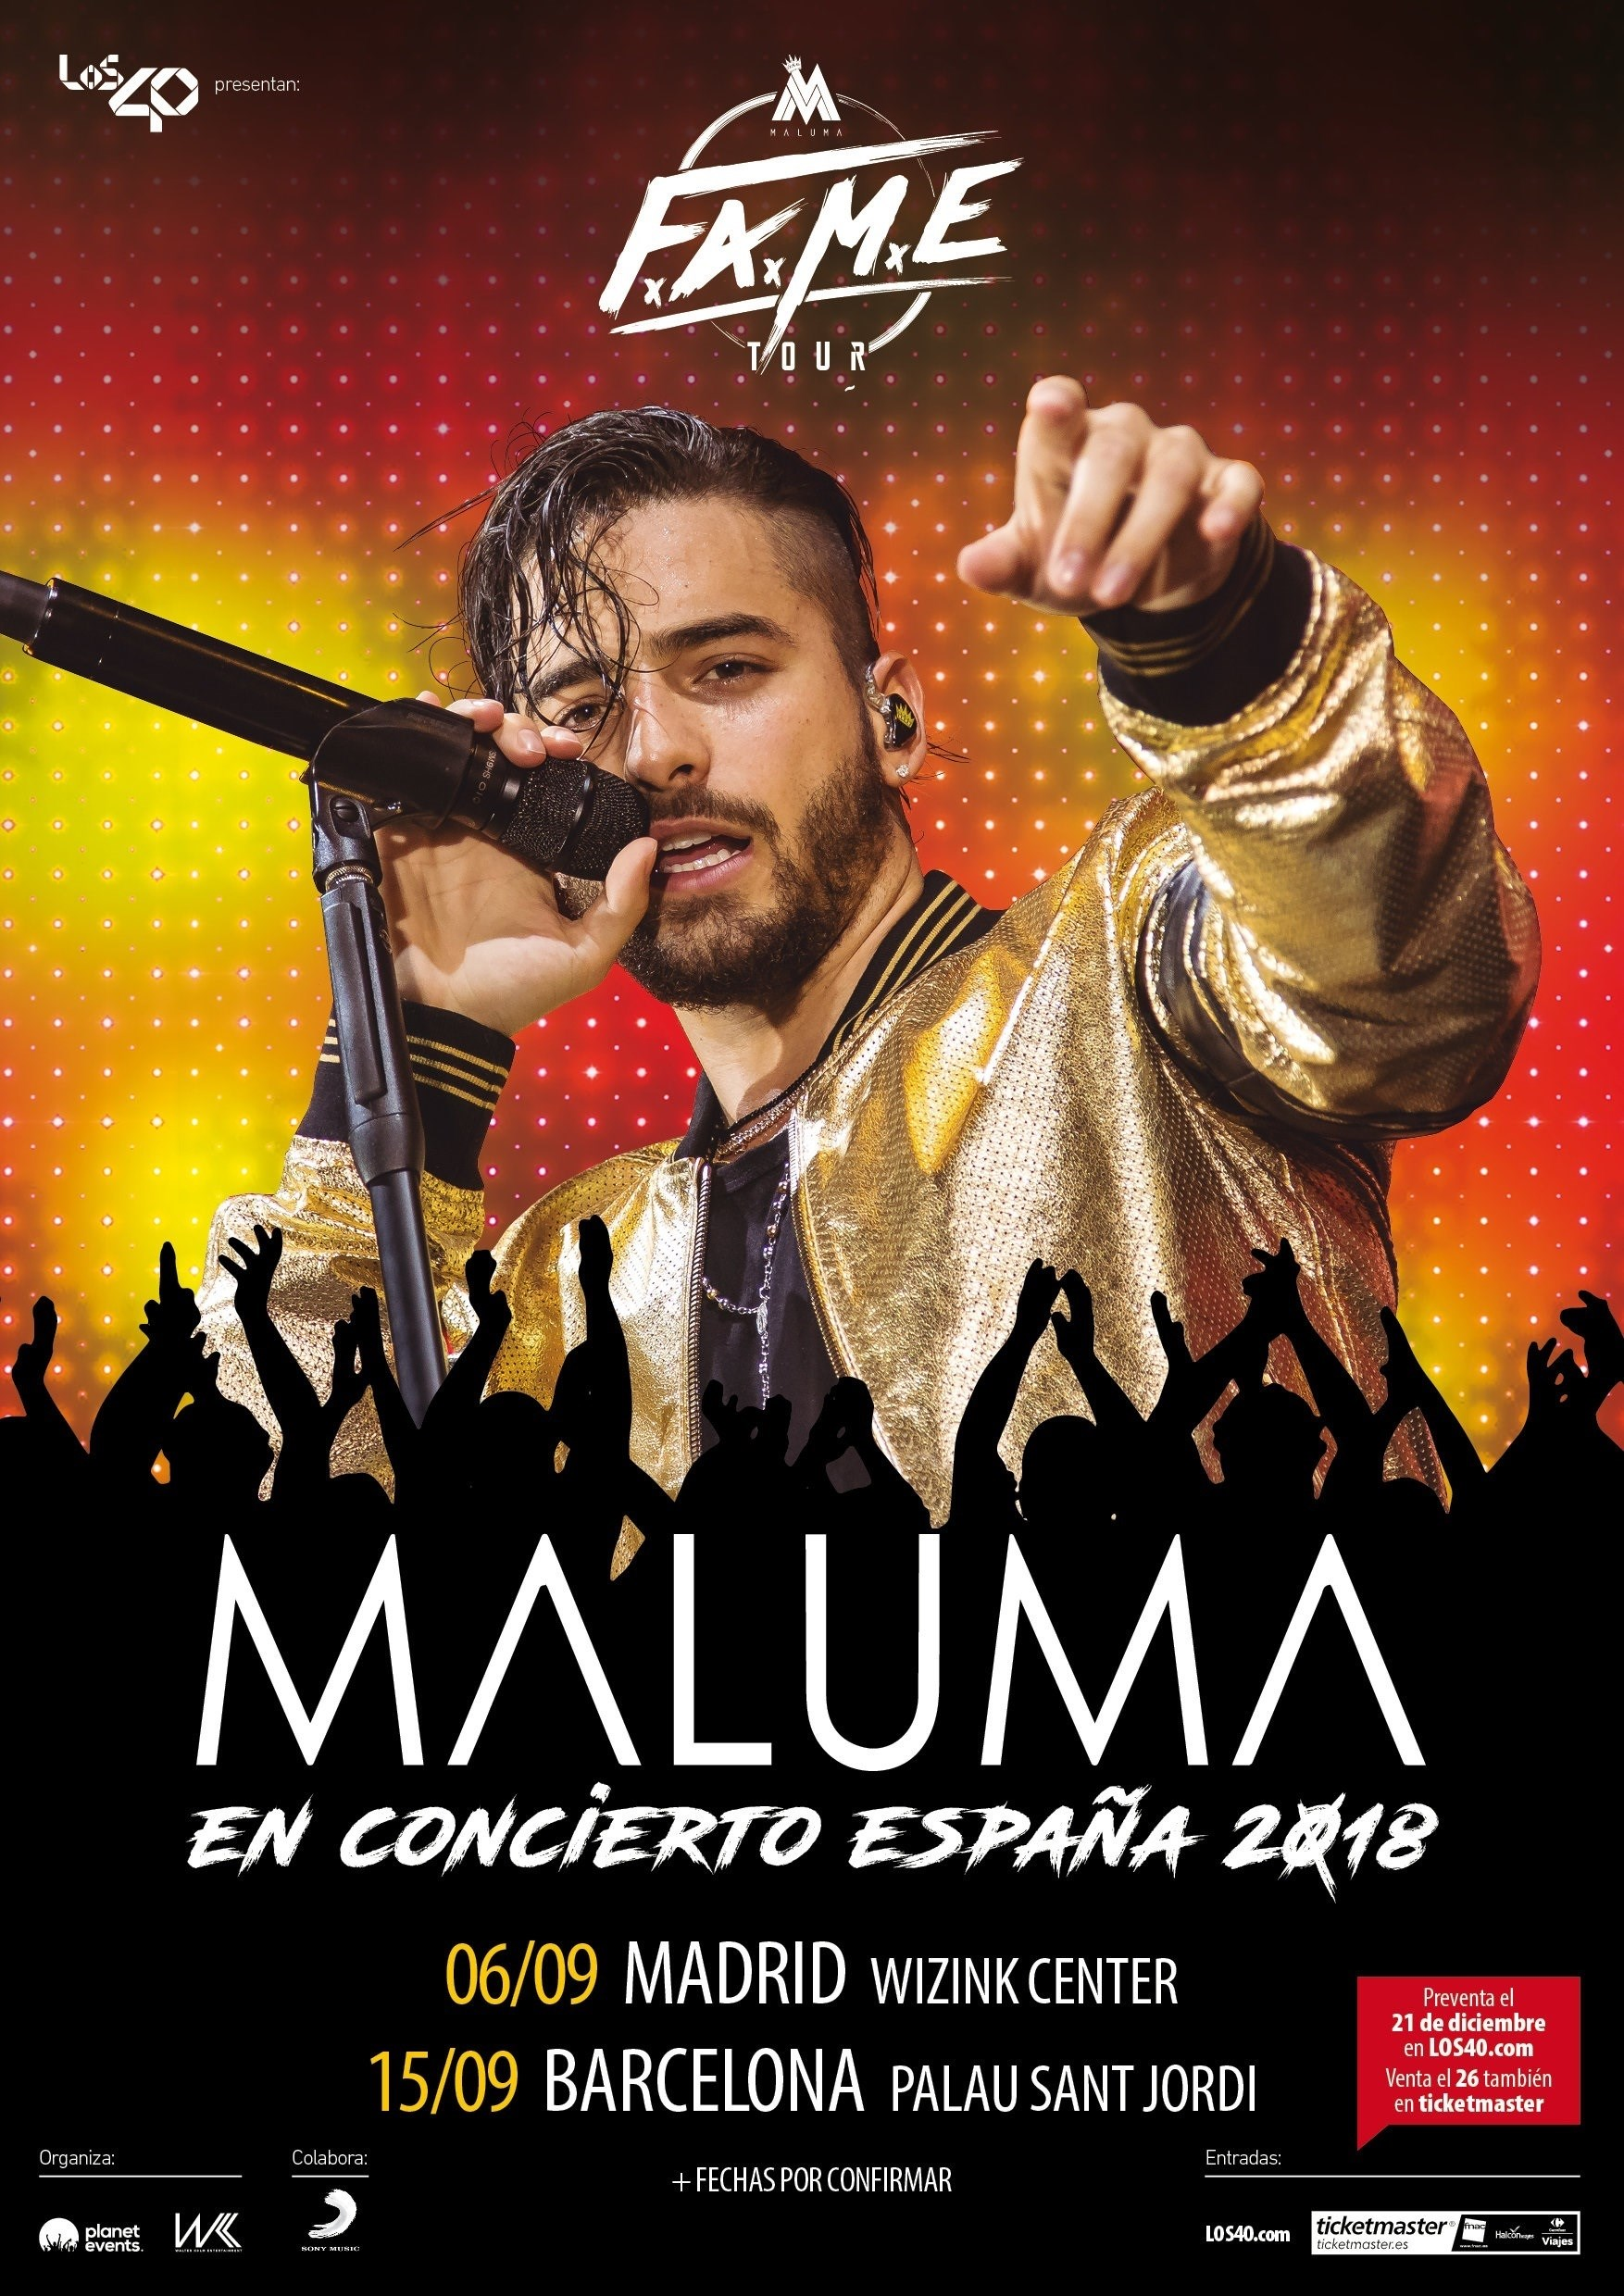 Concierto Maluma Wizink Center Madrid 06/09/18